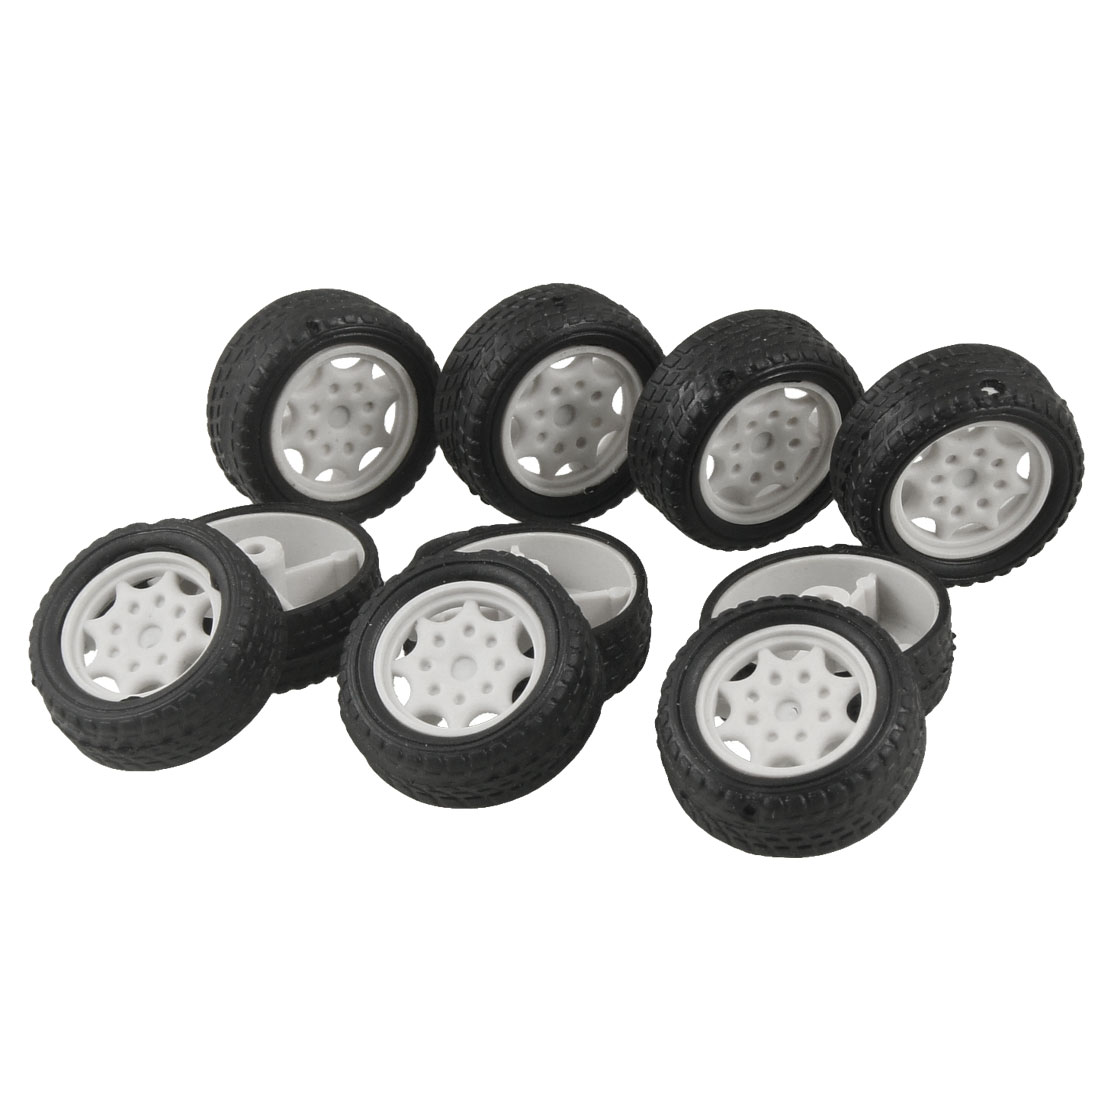 27mm Dia Rubber Roll Plastic Core Kids Toy Vehicles Car Wheels 10 Pcs